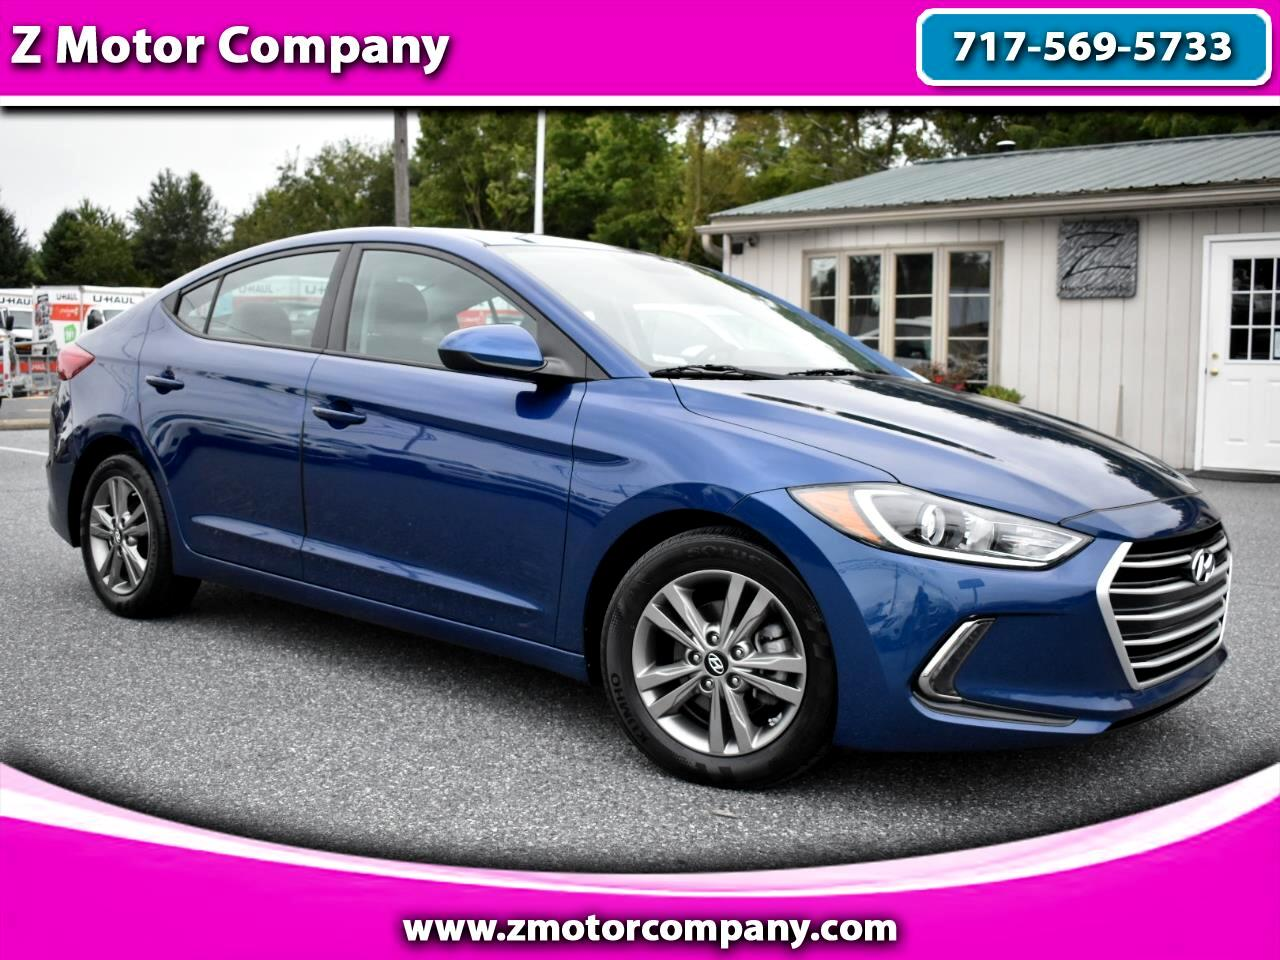 2017 Hyundai Elantra SE w / Tech Package